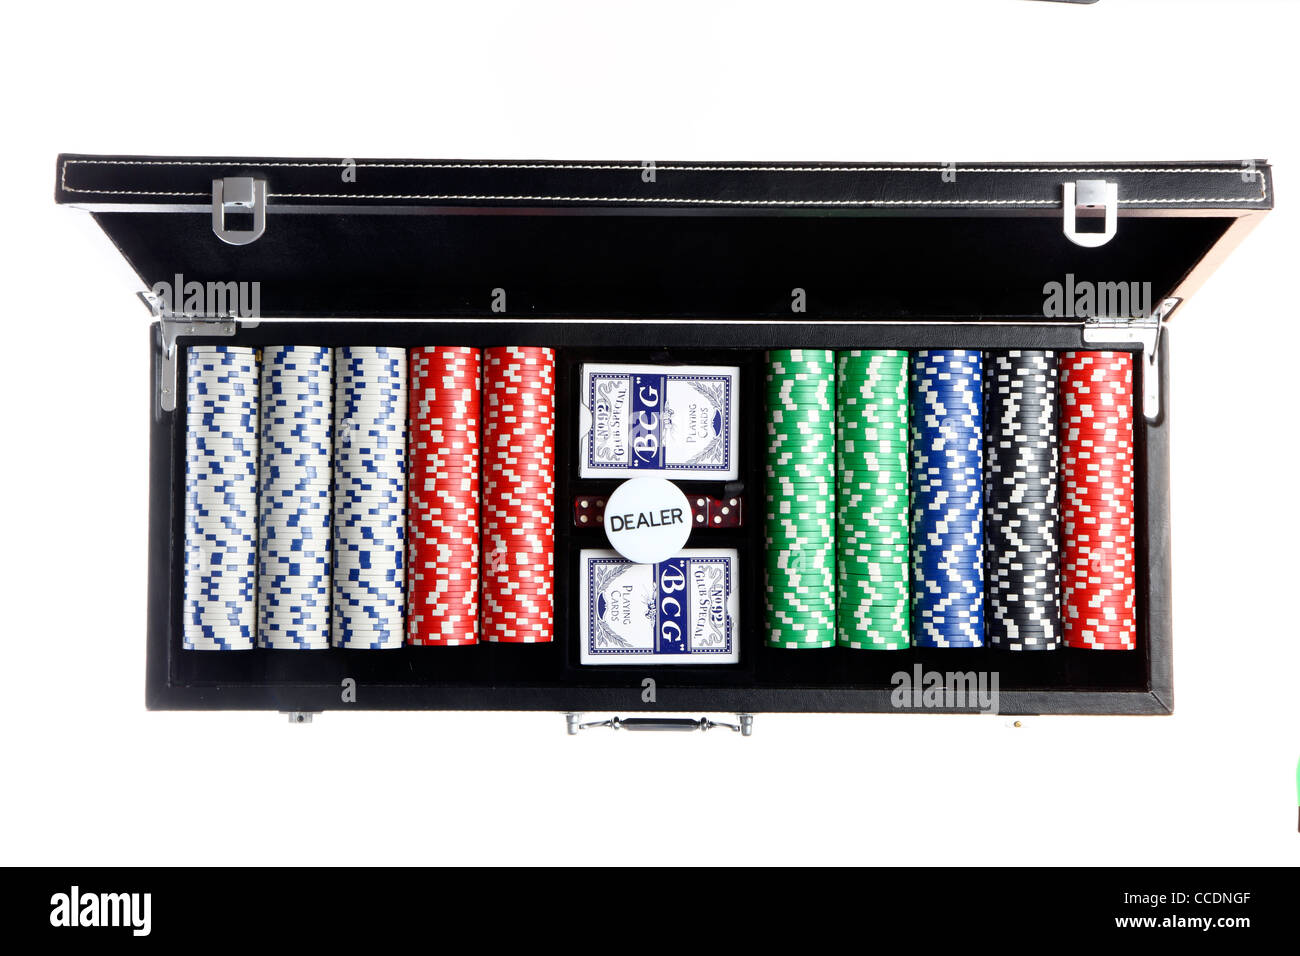 Poker game, cards, tokens, in a case. - Stock Image